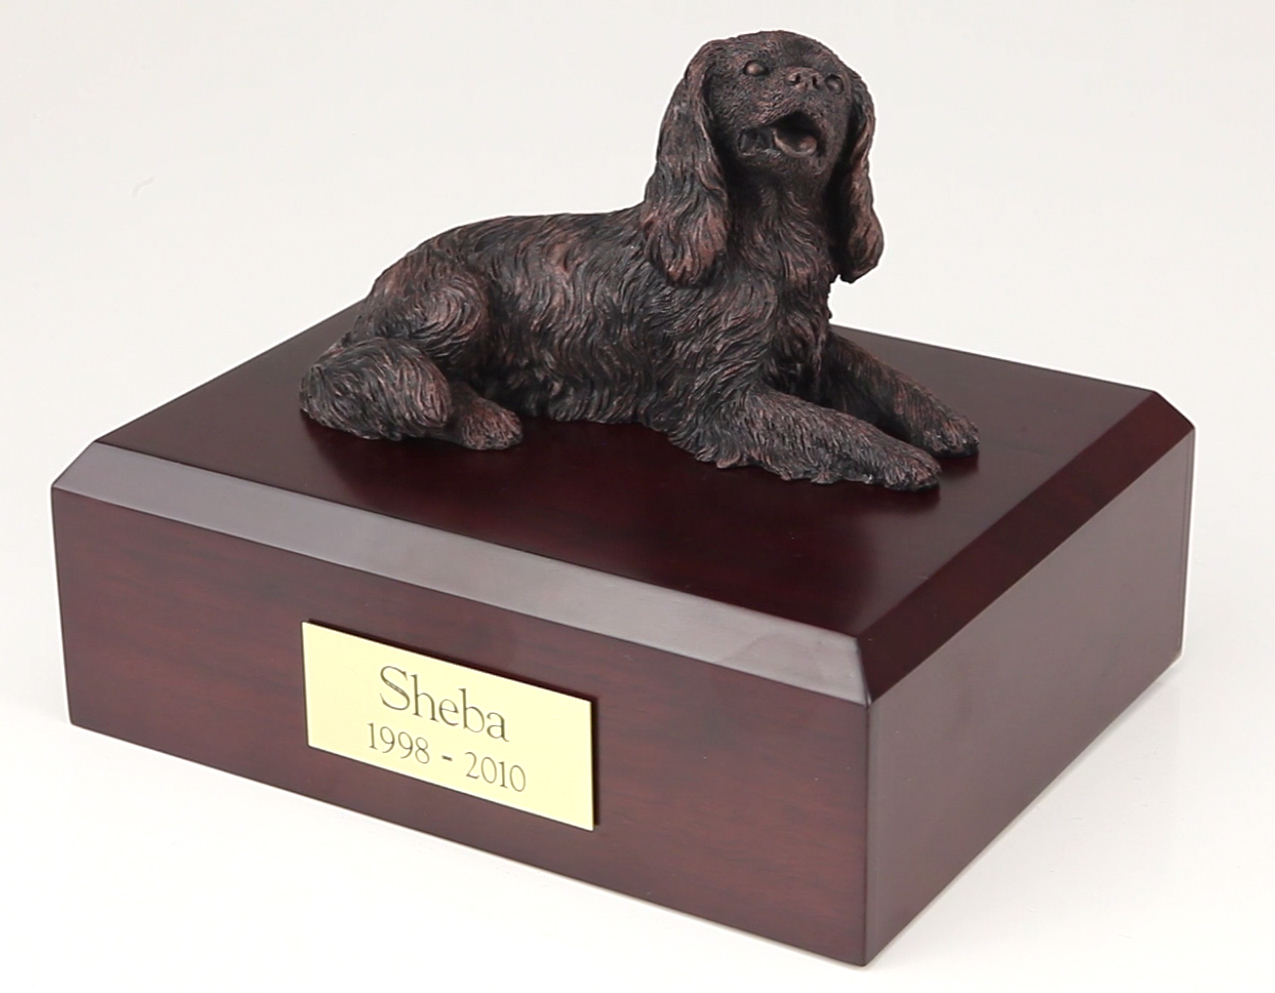 Dog, King Charles Spaniel, Bronze - Figurine Urn